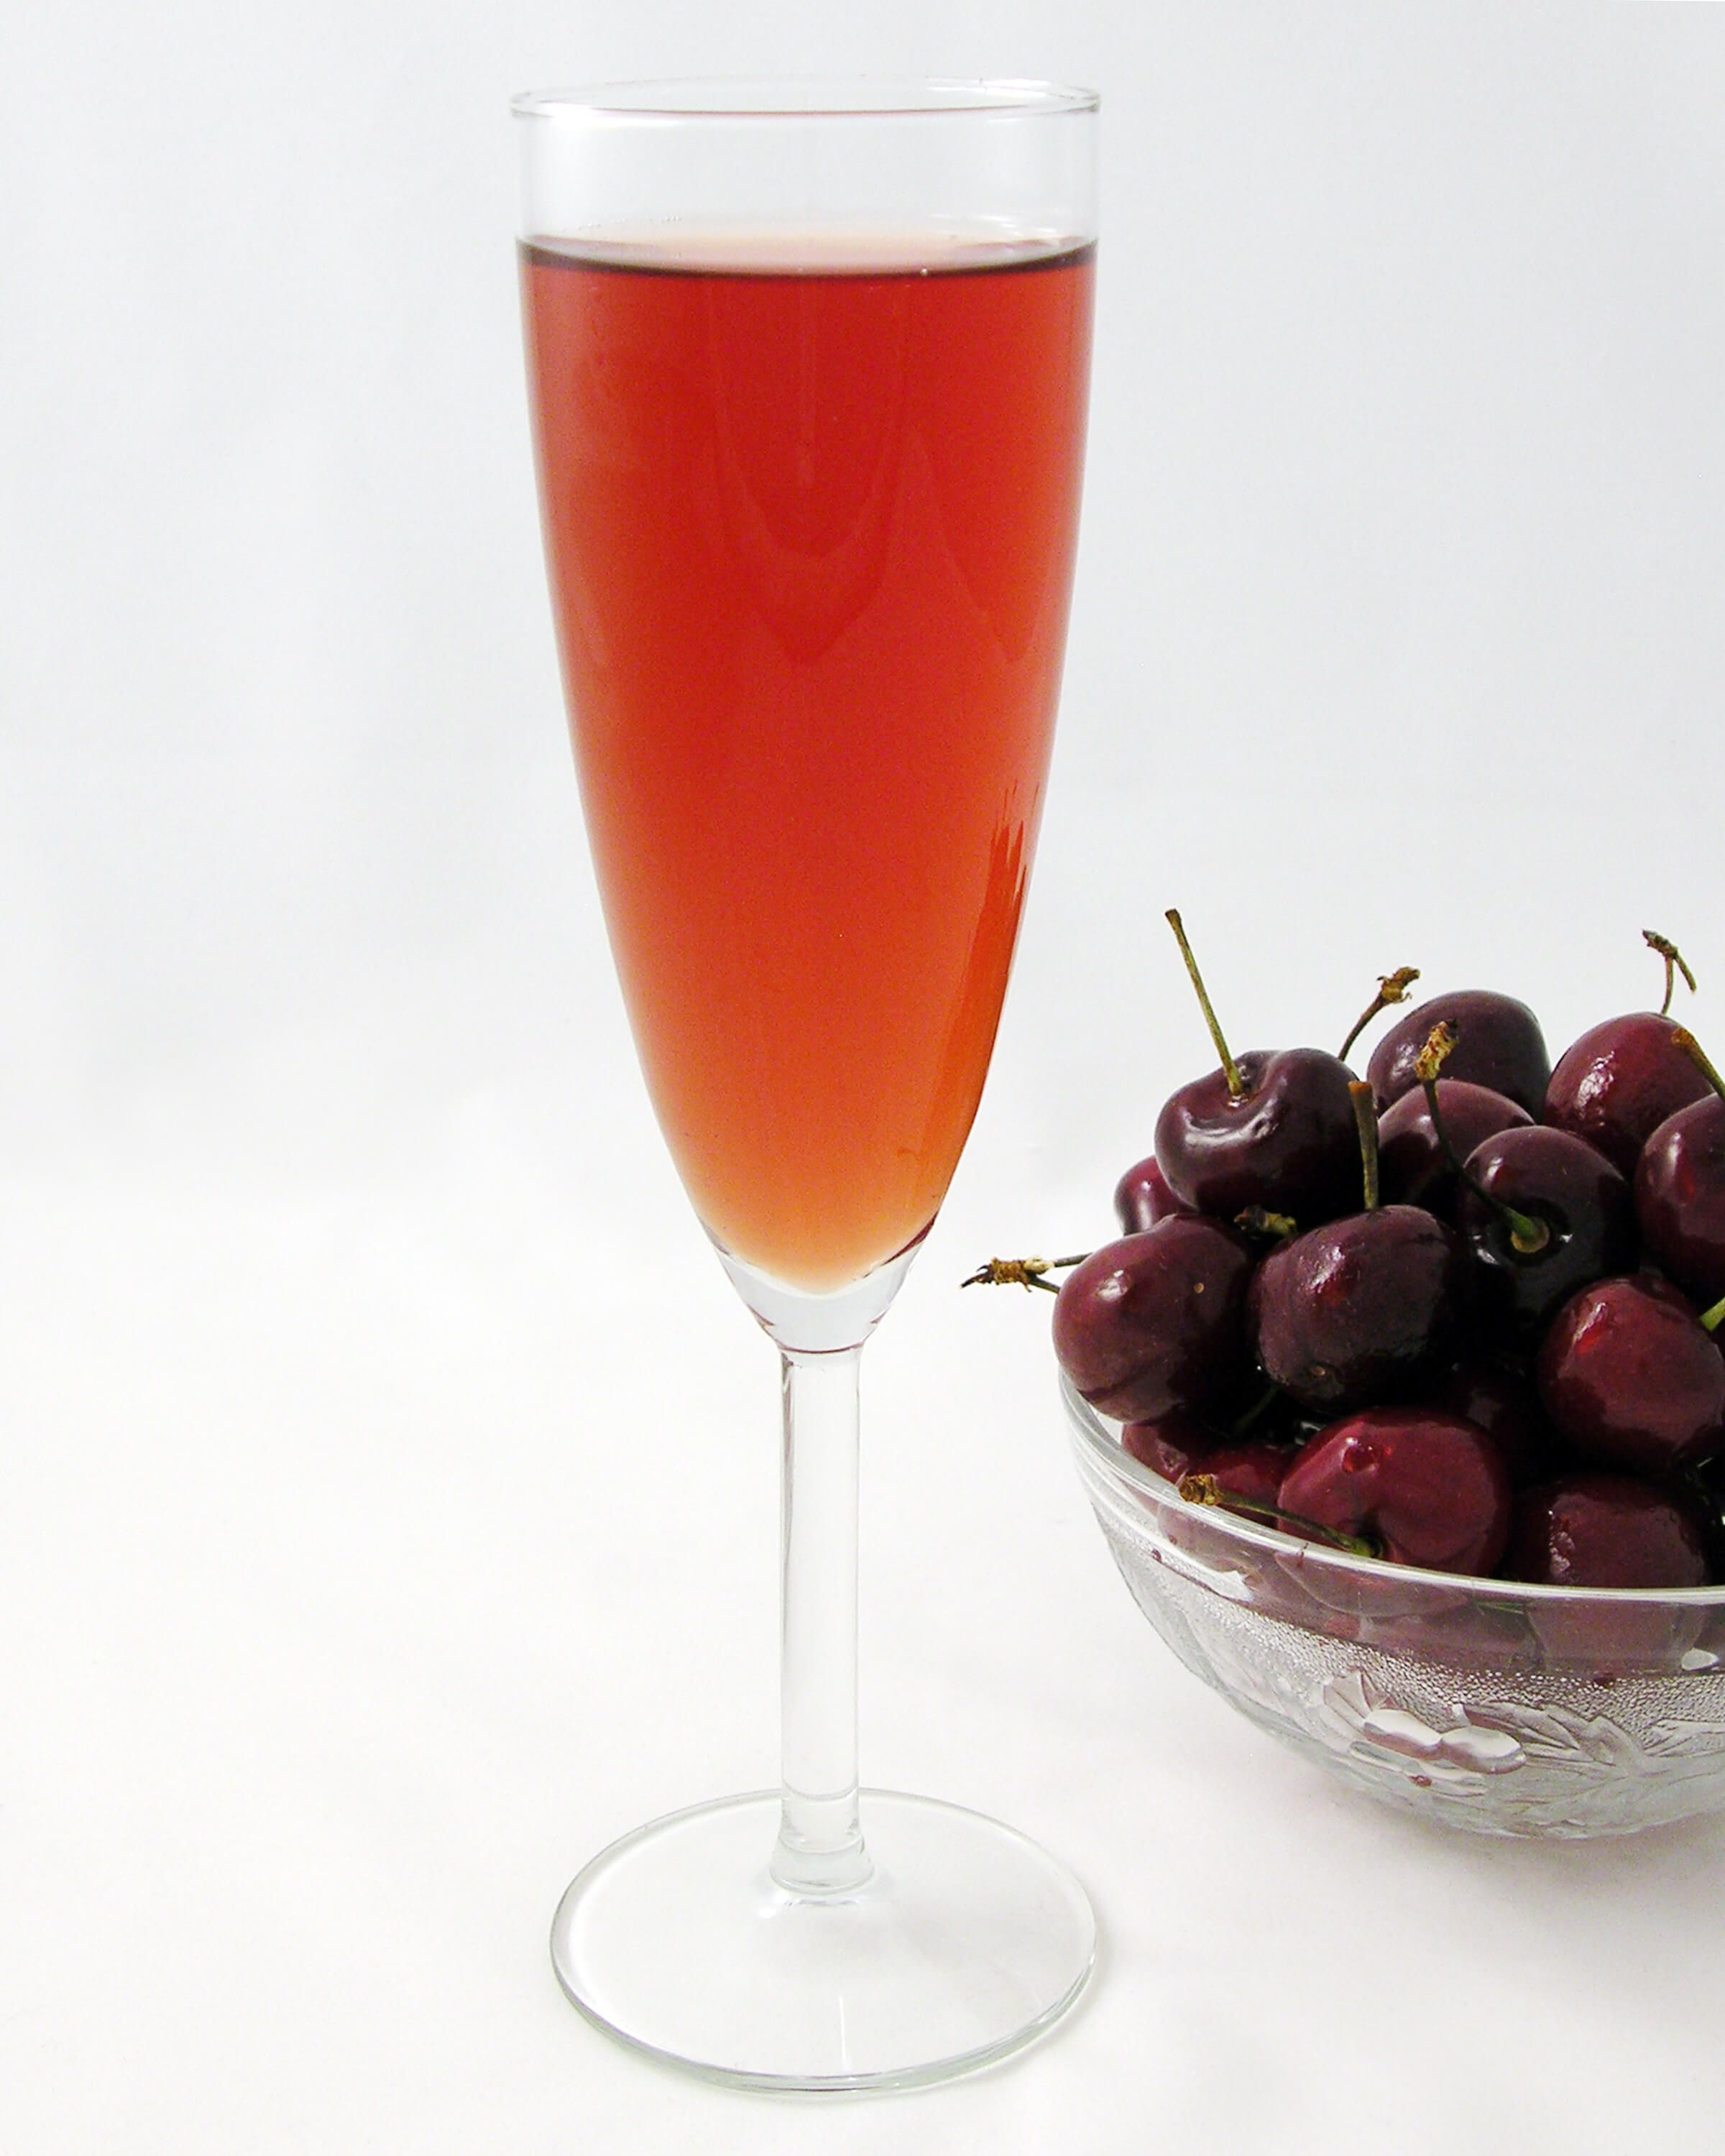 For those 21 and over, this Cherry Bellini recipe is a great brunch accompaniment.